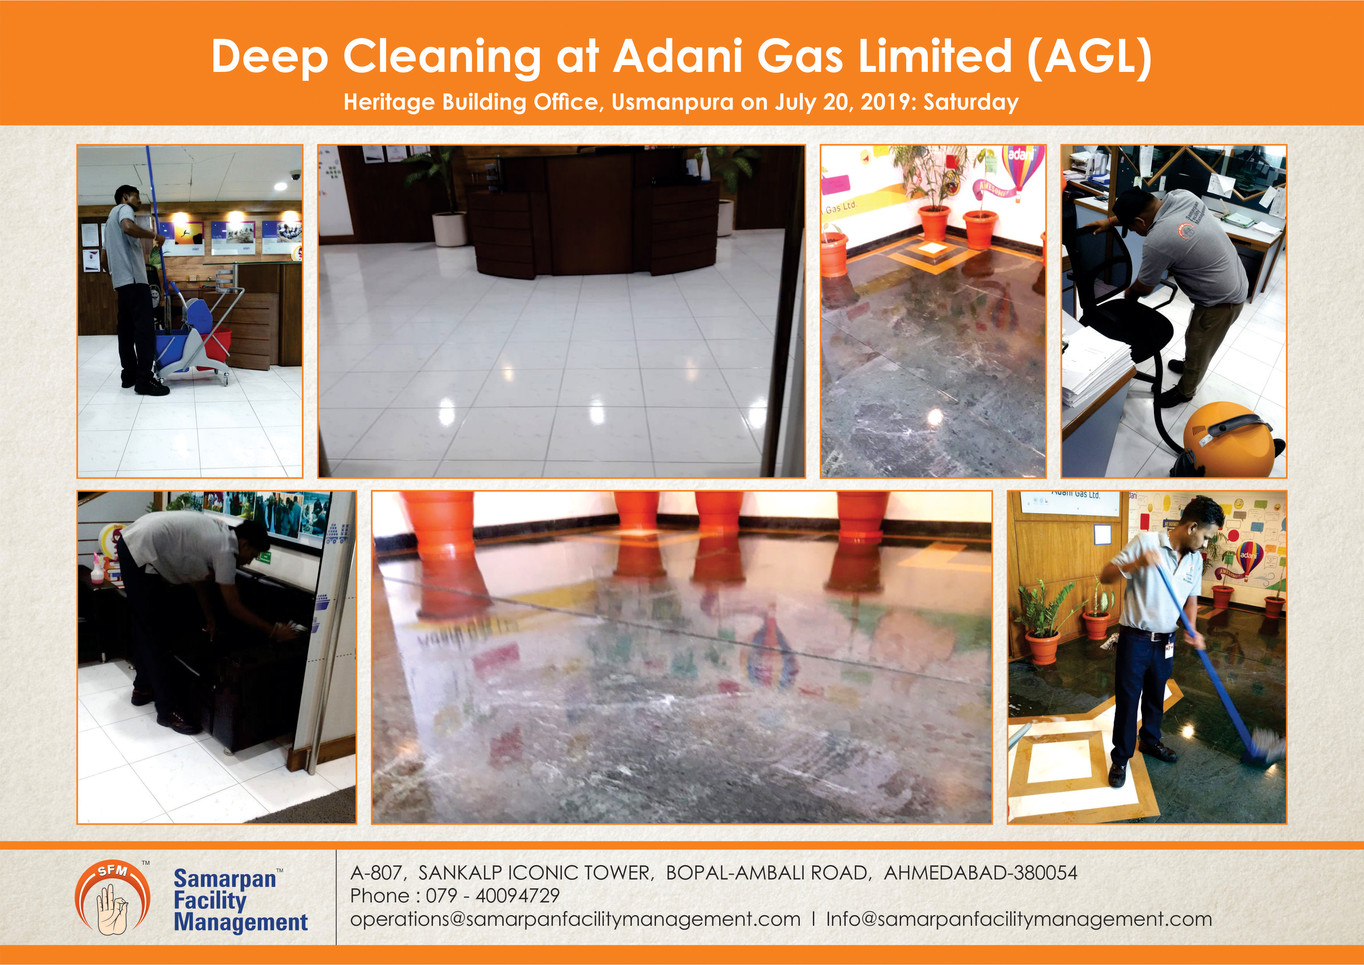 Deep Cleaning at Adani Gas Limited (AGL)